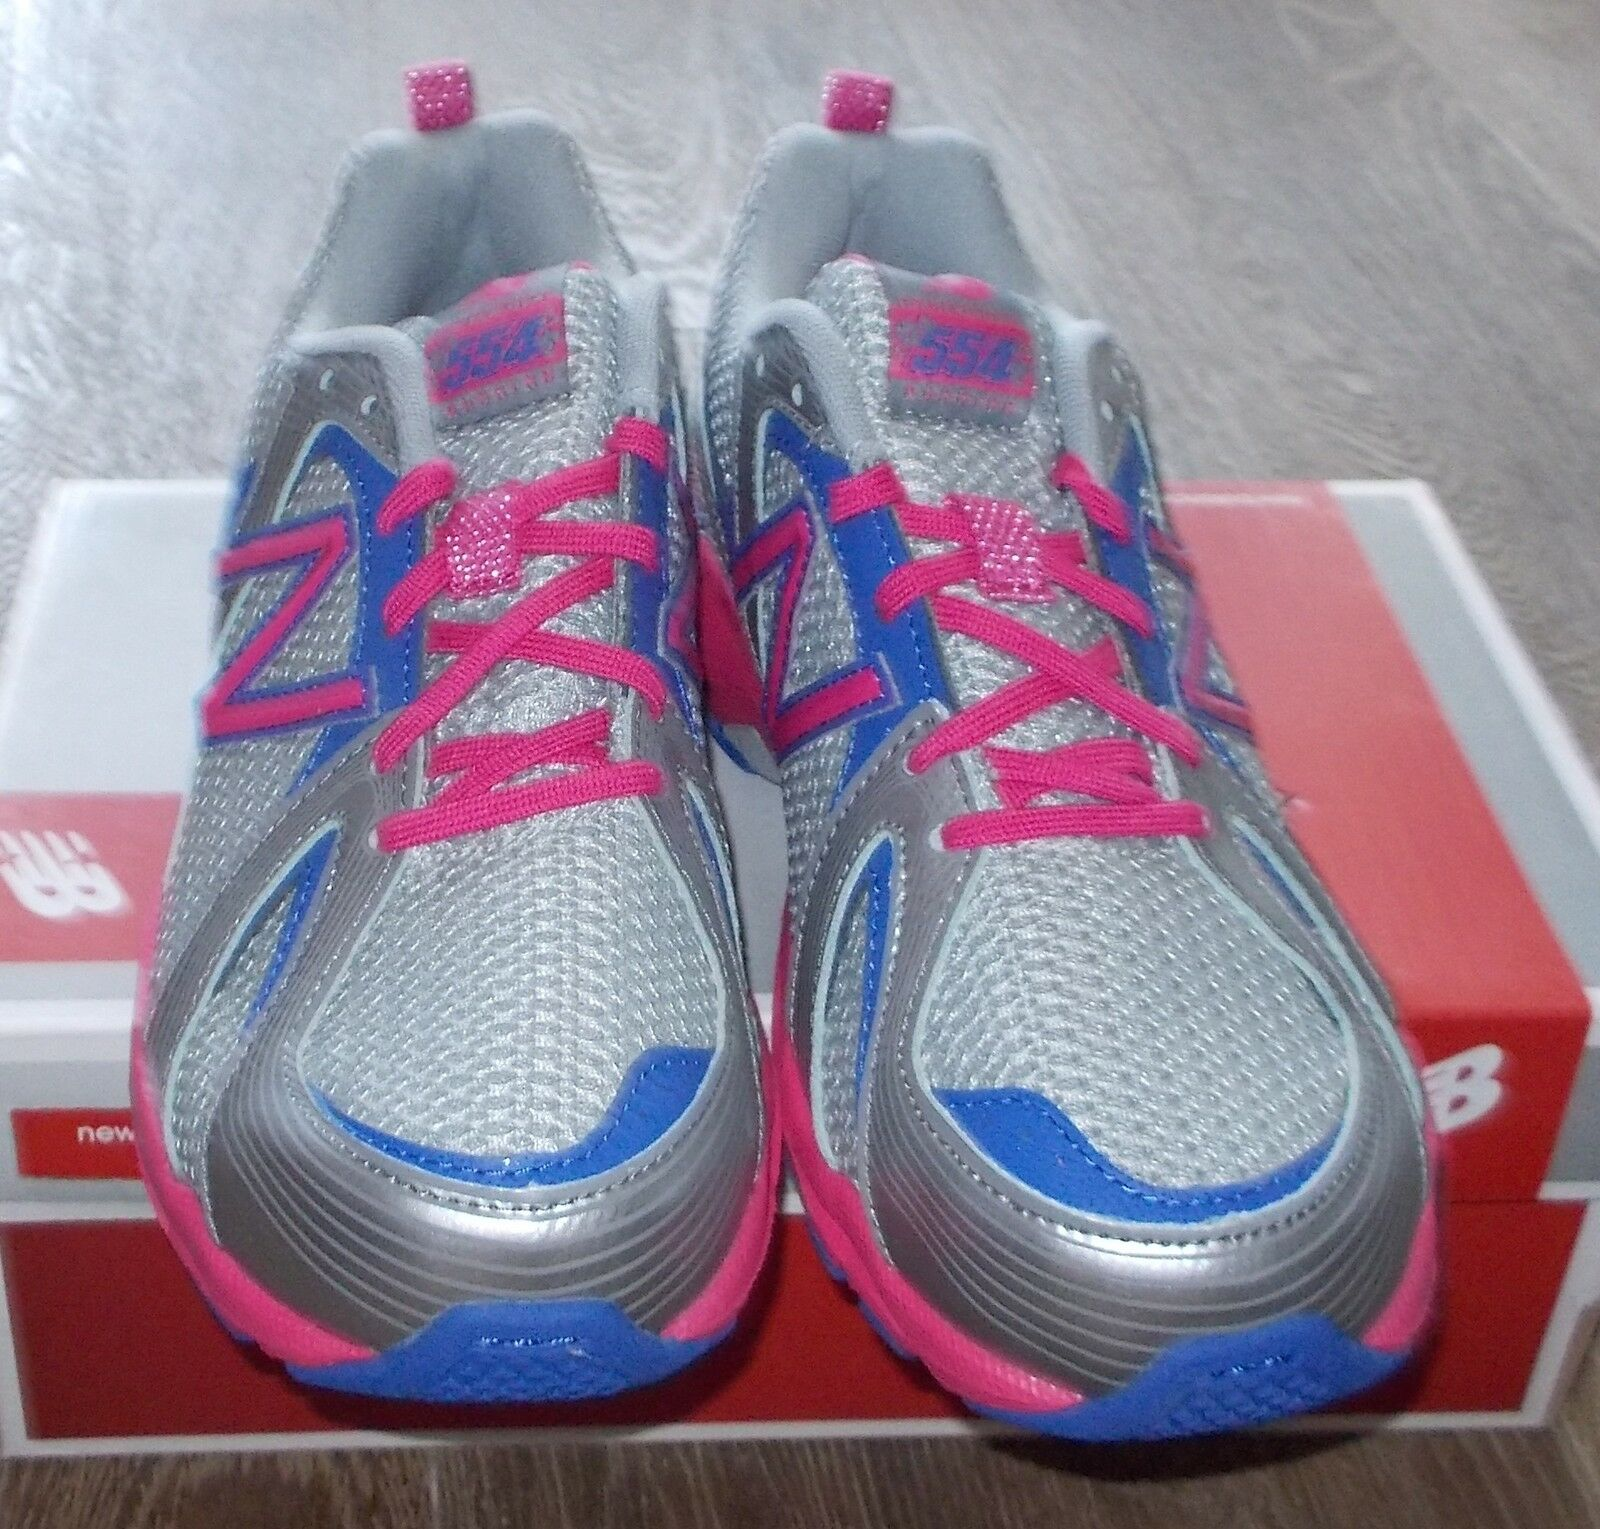 NEW BALANCE 554 Running (7Y) Silver Pink Damenschuhe 8.5 (7Y) Running Medium Width Limited NIB e2fbbc